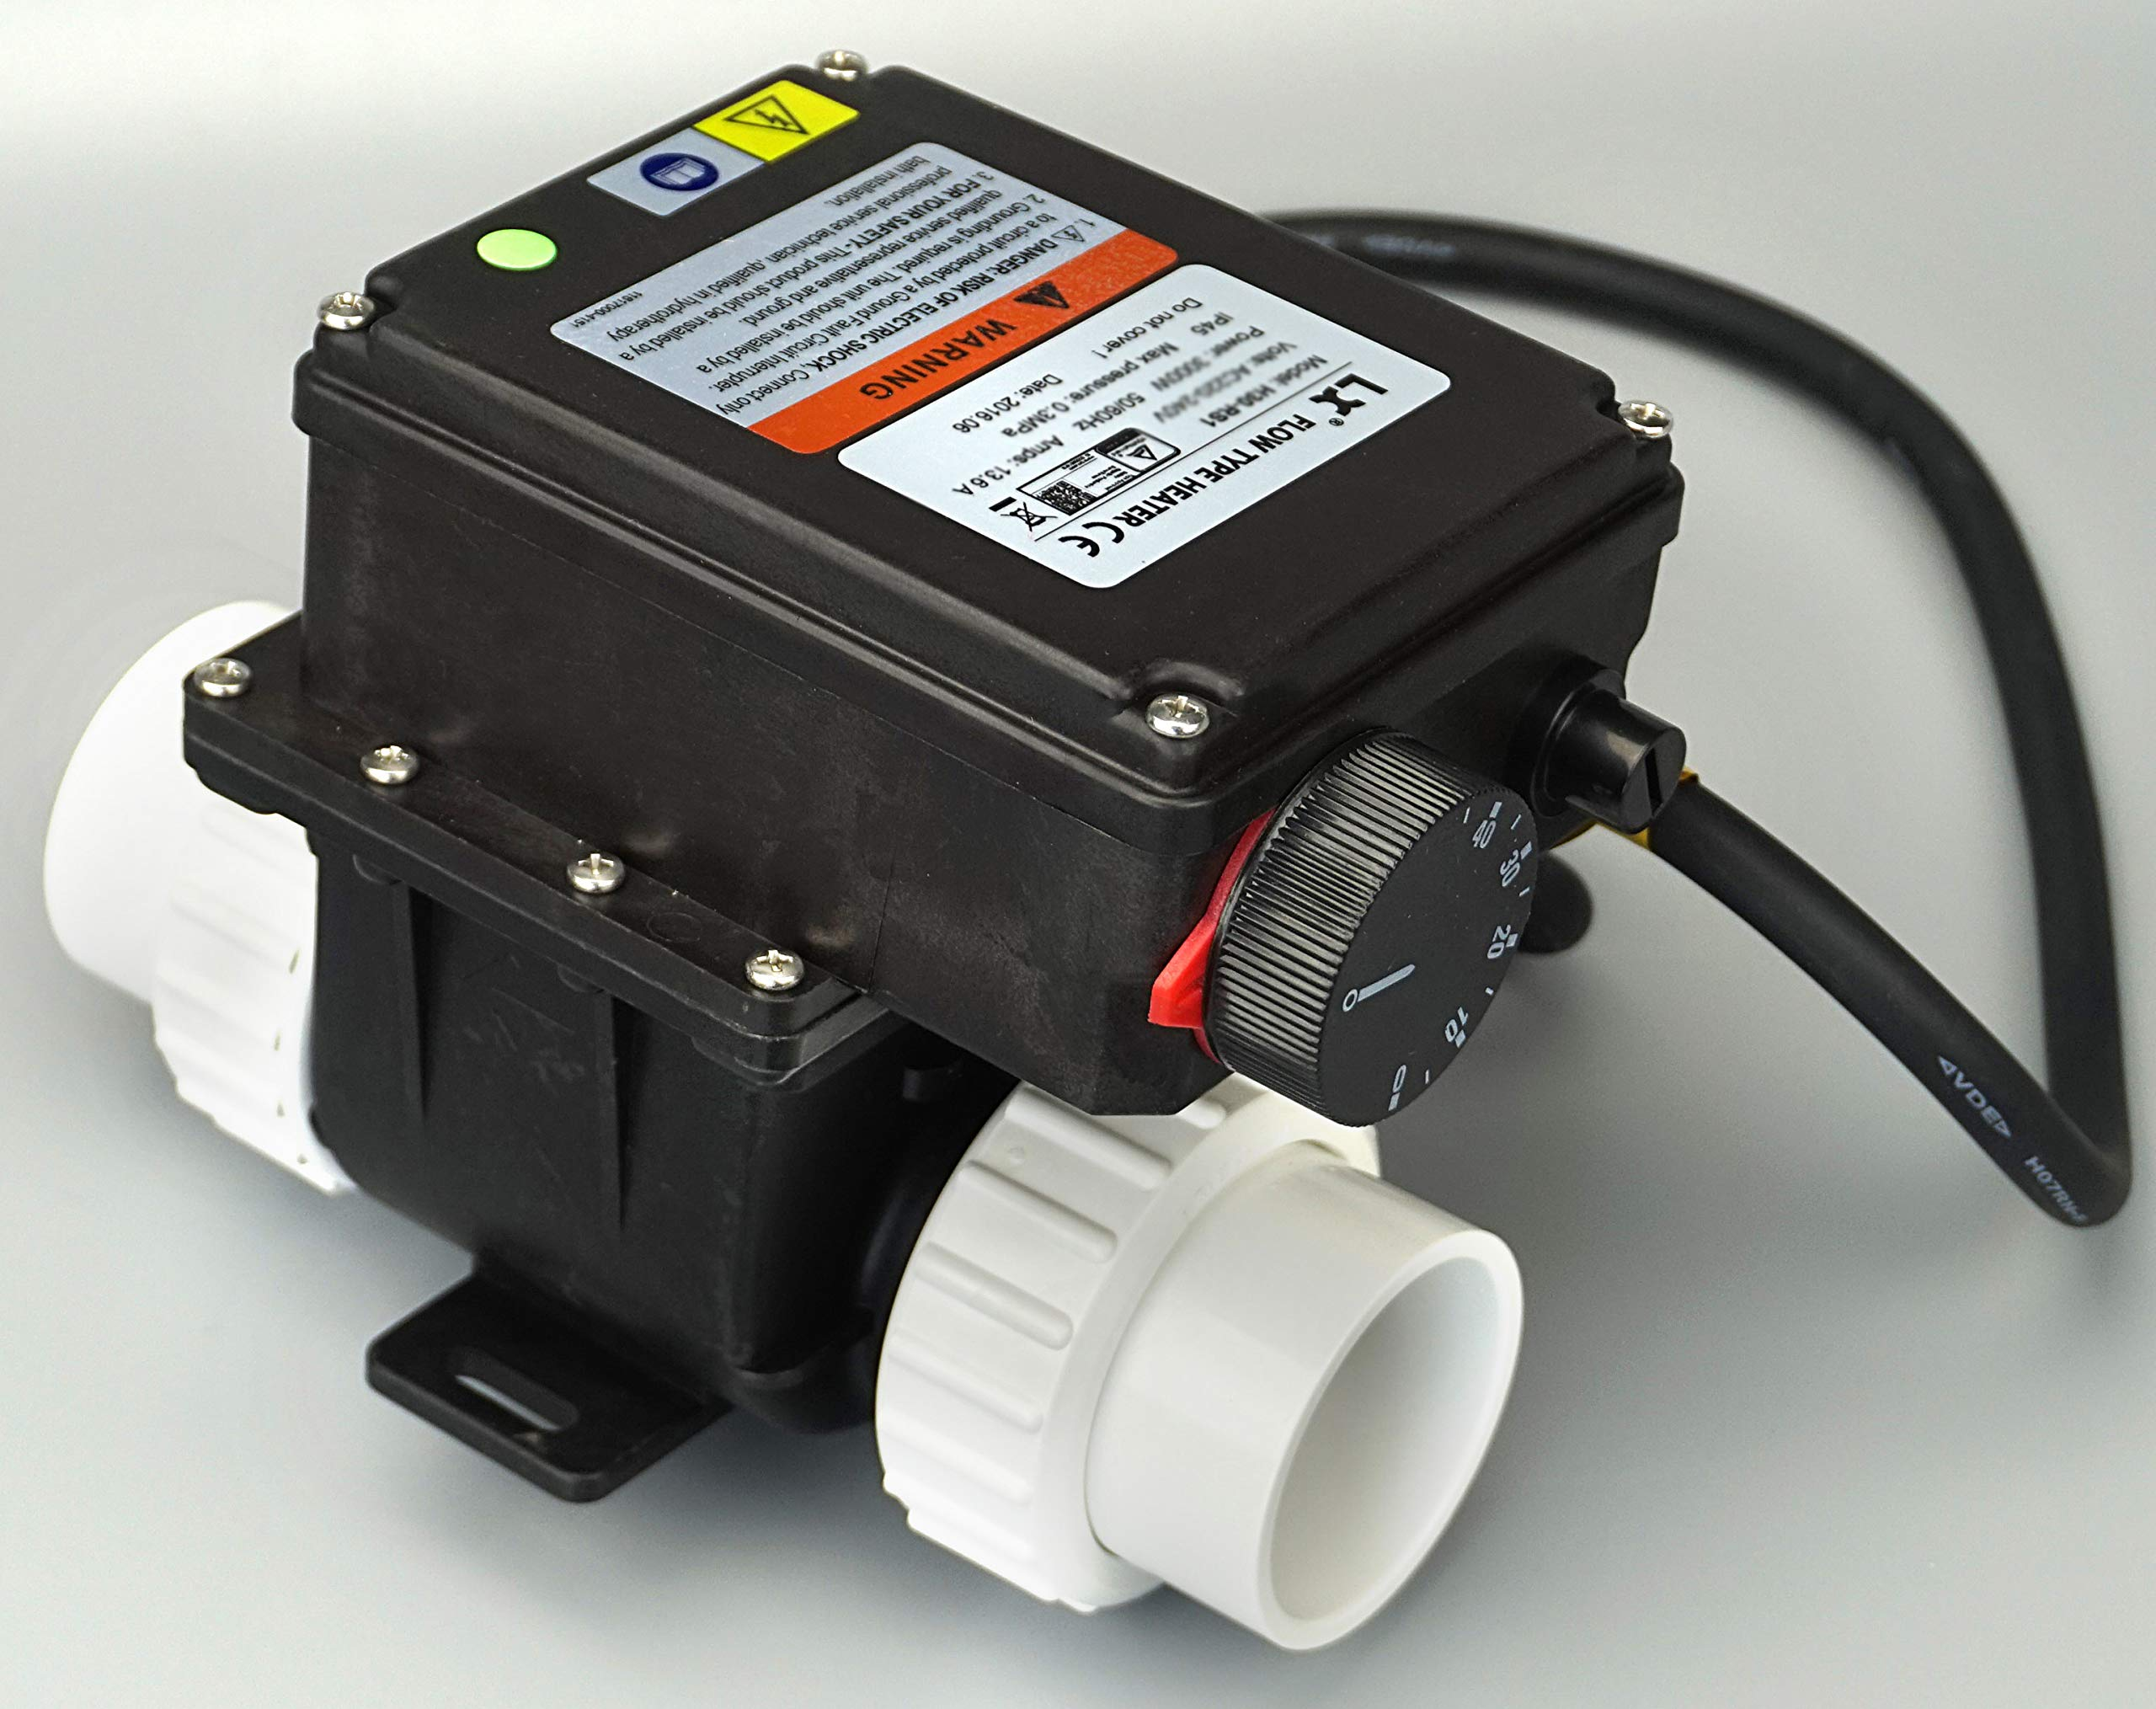 pool spa part hot tub LX H20-Rs1 Thermostat 110V 2kw with Adjustable Temperature Thermostat for Some hot tubs,Underground Small Pool &Bathtub by pool spa part